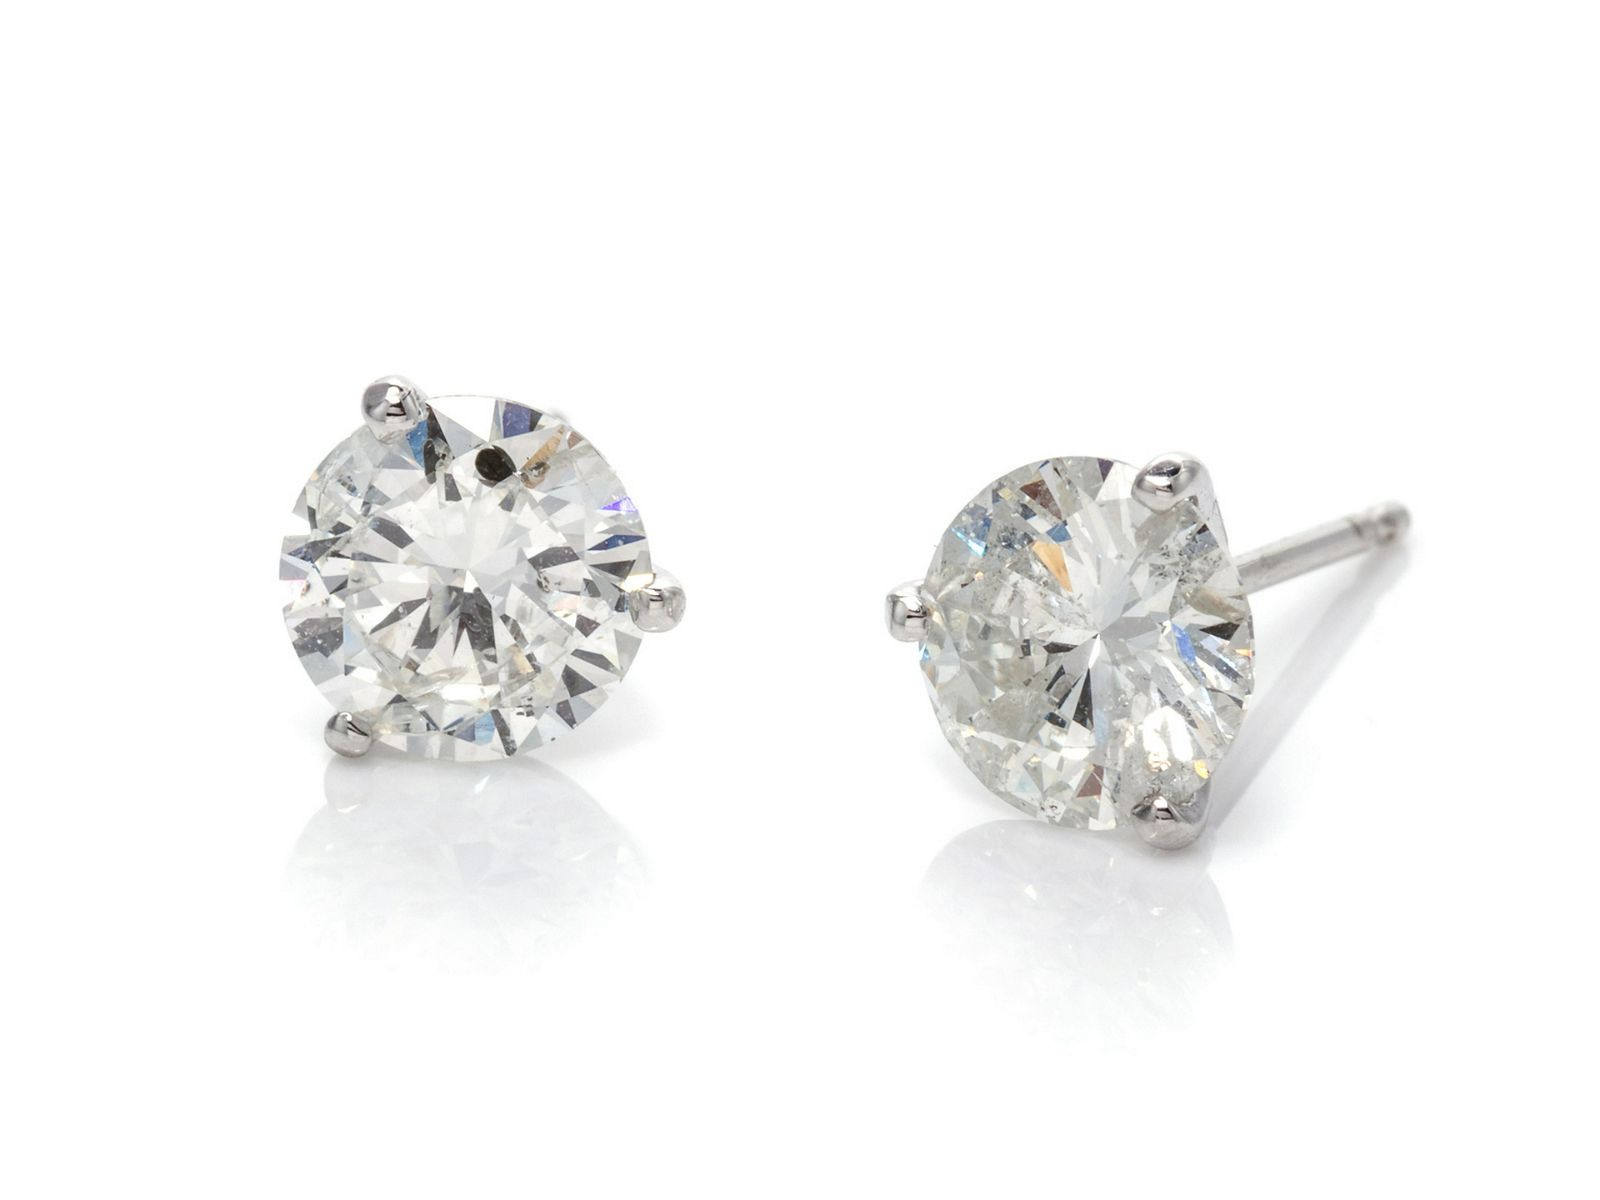 A Pair of 14 Karat White Gold and Diamond Stud